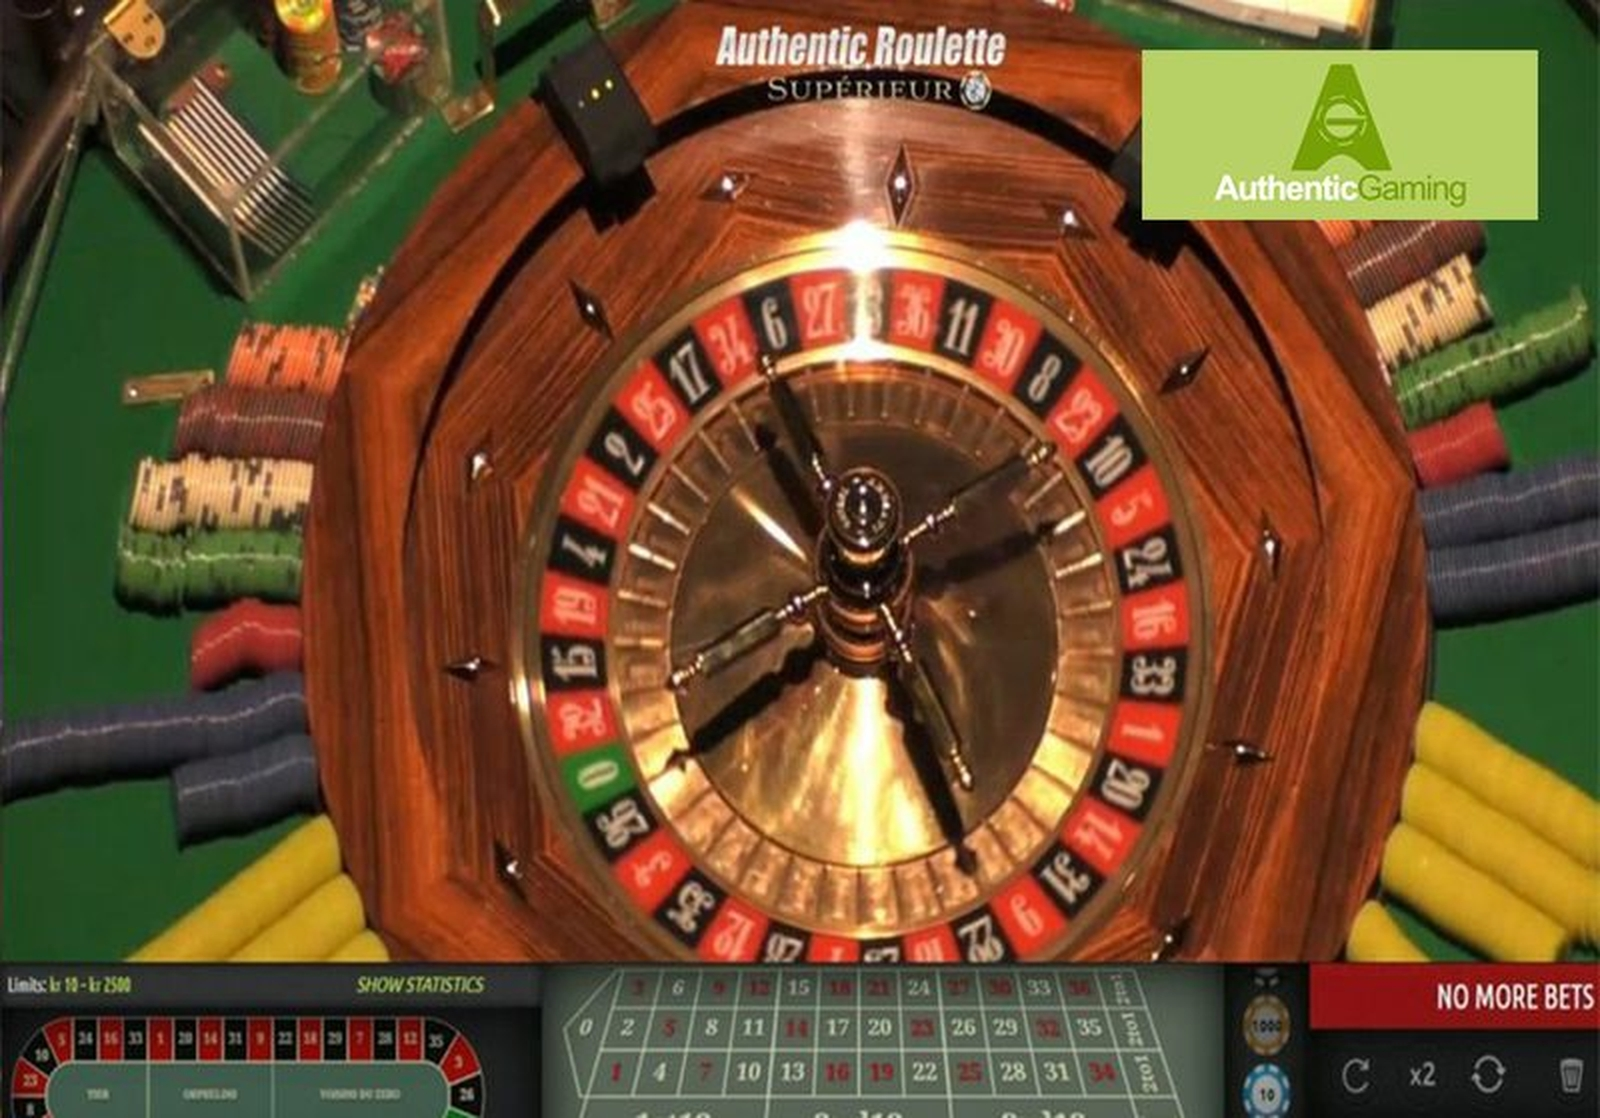 The Roulette Superieur Live Casino Online Slot Demo Game by Authentic Gaming